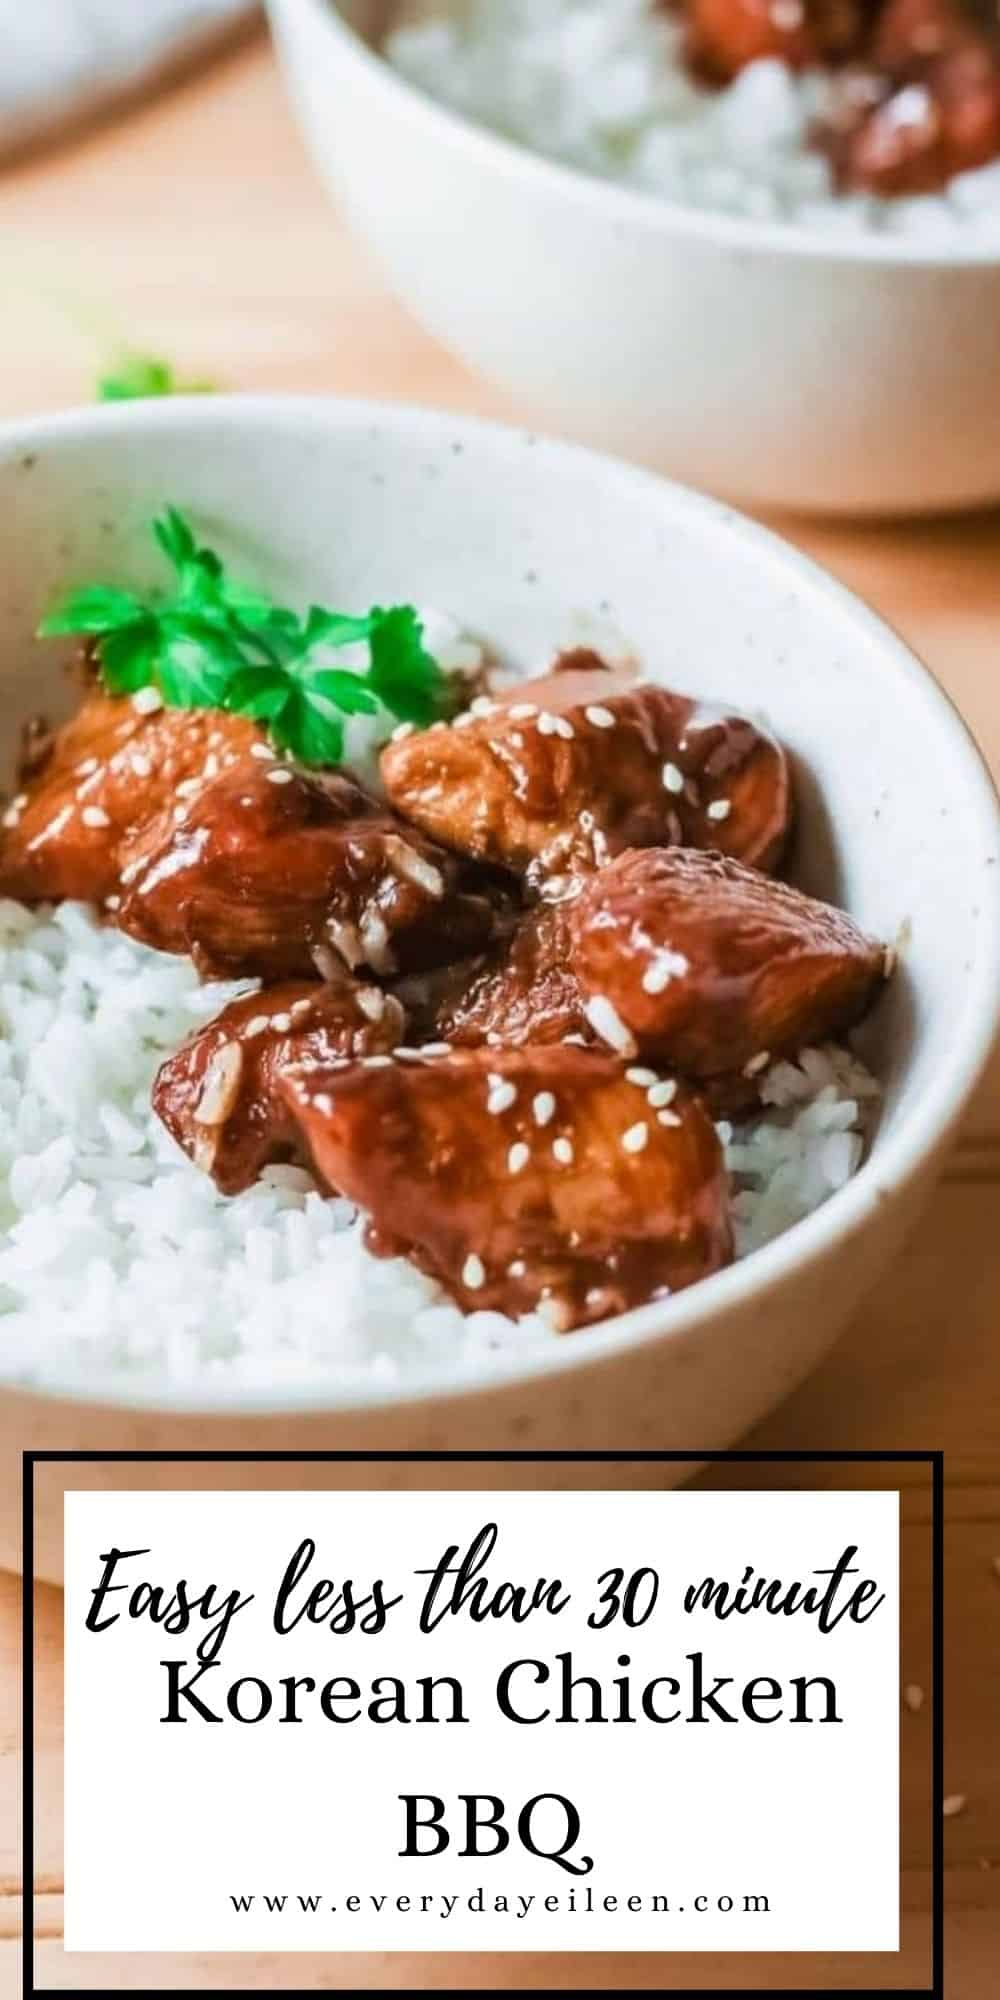 Korean BBQ Chicken is a quick and easy recipe for boneless chicken breasts made in a skillet in 20 minutes. The zesty sauce is made in just a few minutes with simple pantry staples for the most flavor-packed meal. It's an easy dinner recipe that is quick and delicious. A great weeknight family dinner.  via @everydayeileen